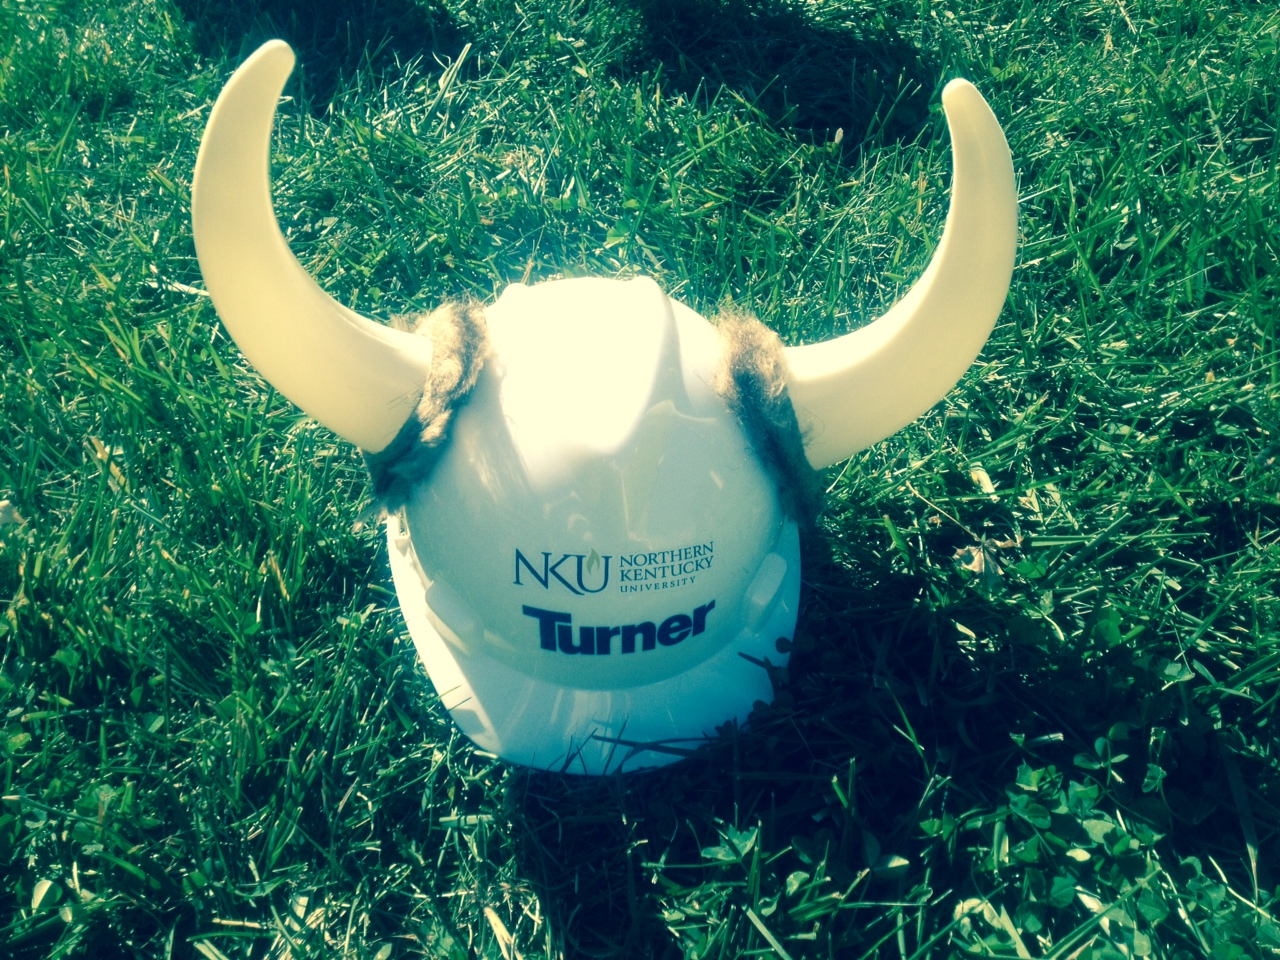 The unique NKU Norse hardhats provided by Turner Construction for Wednesday's groundbreaking